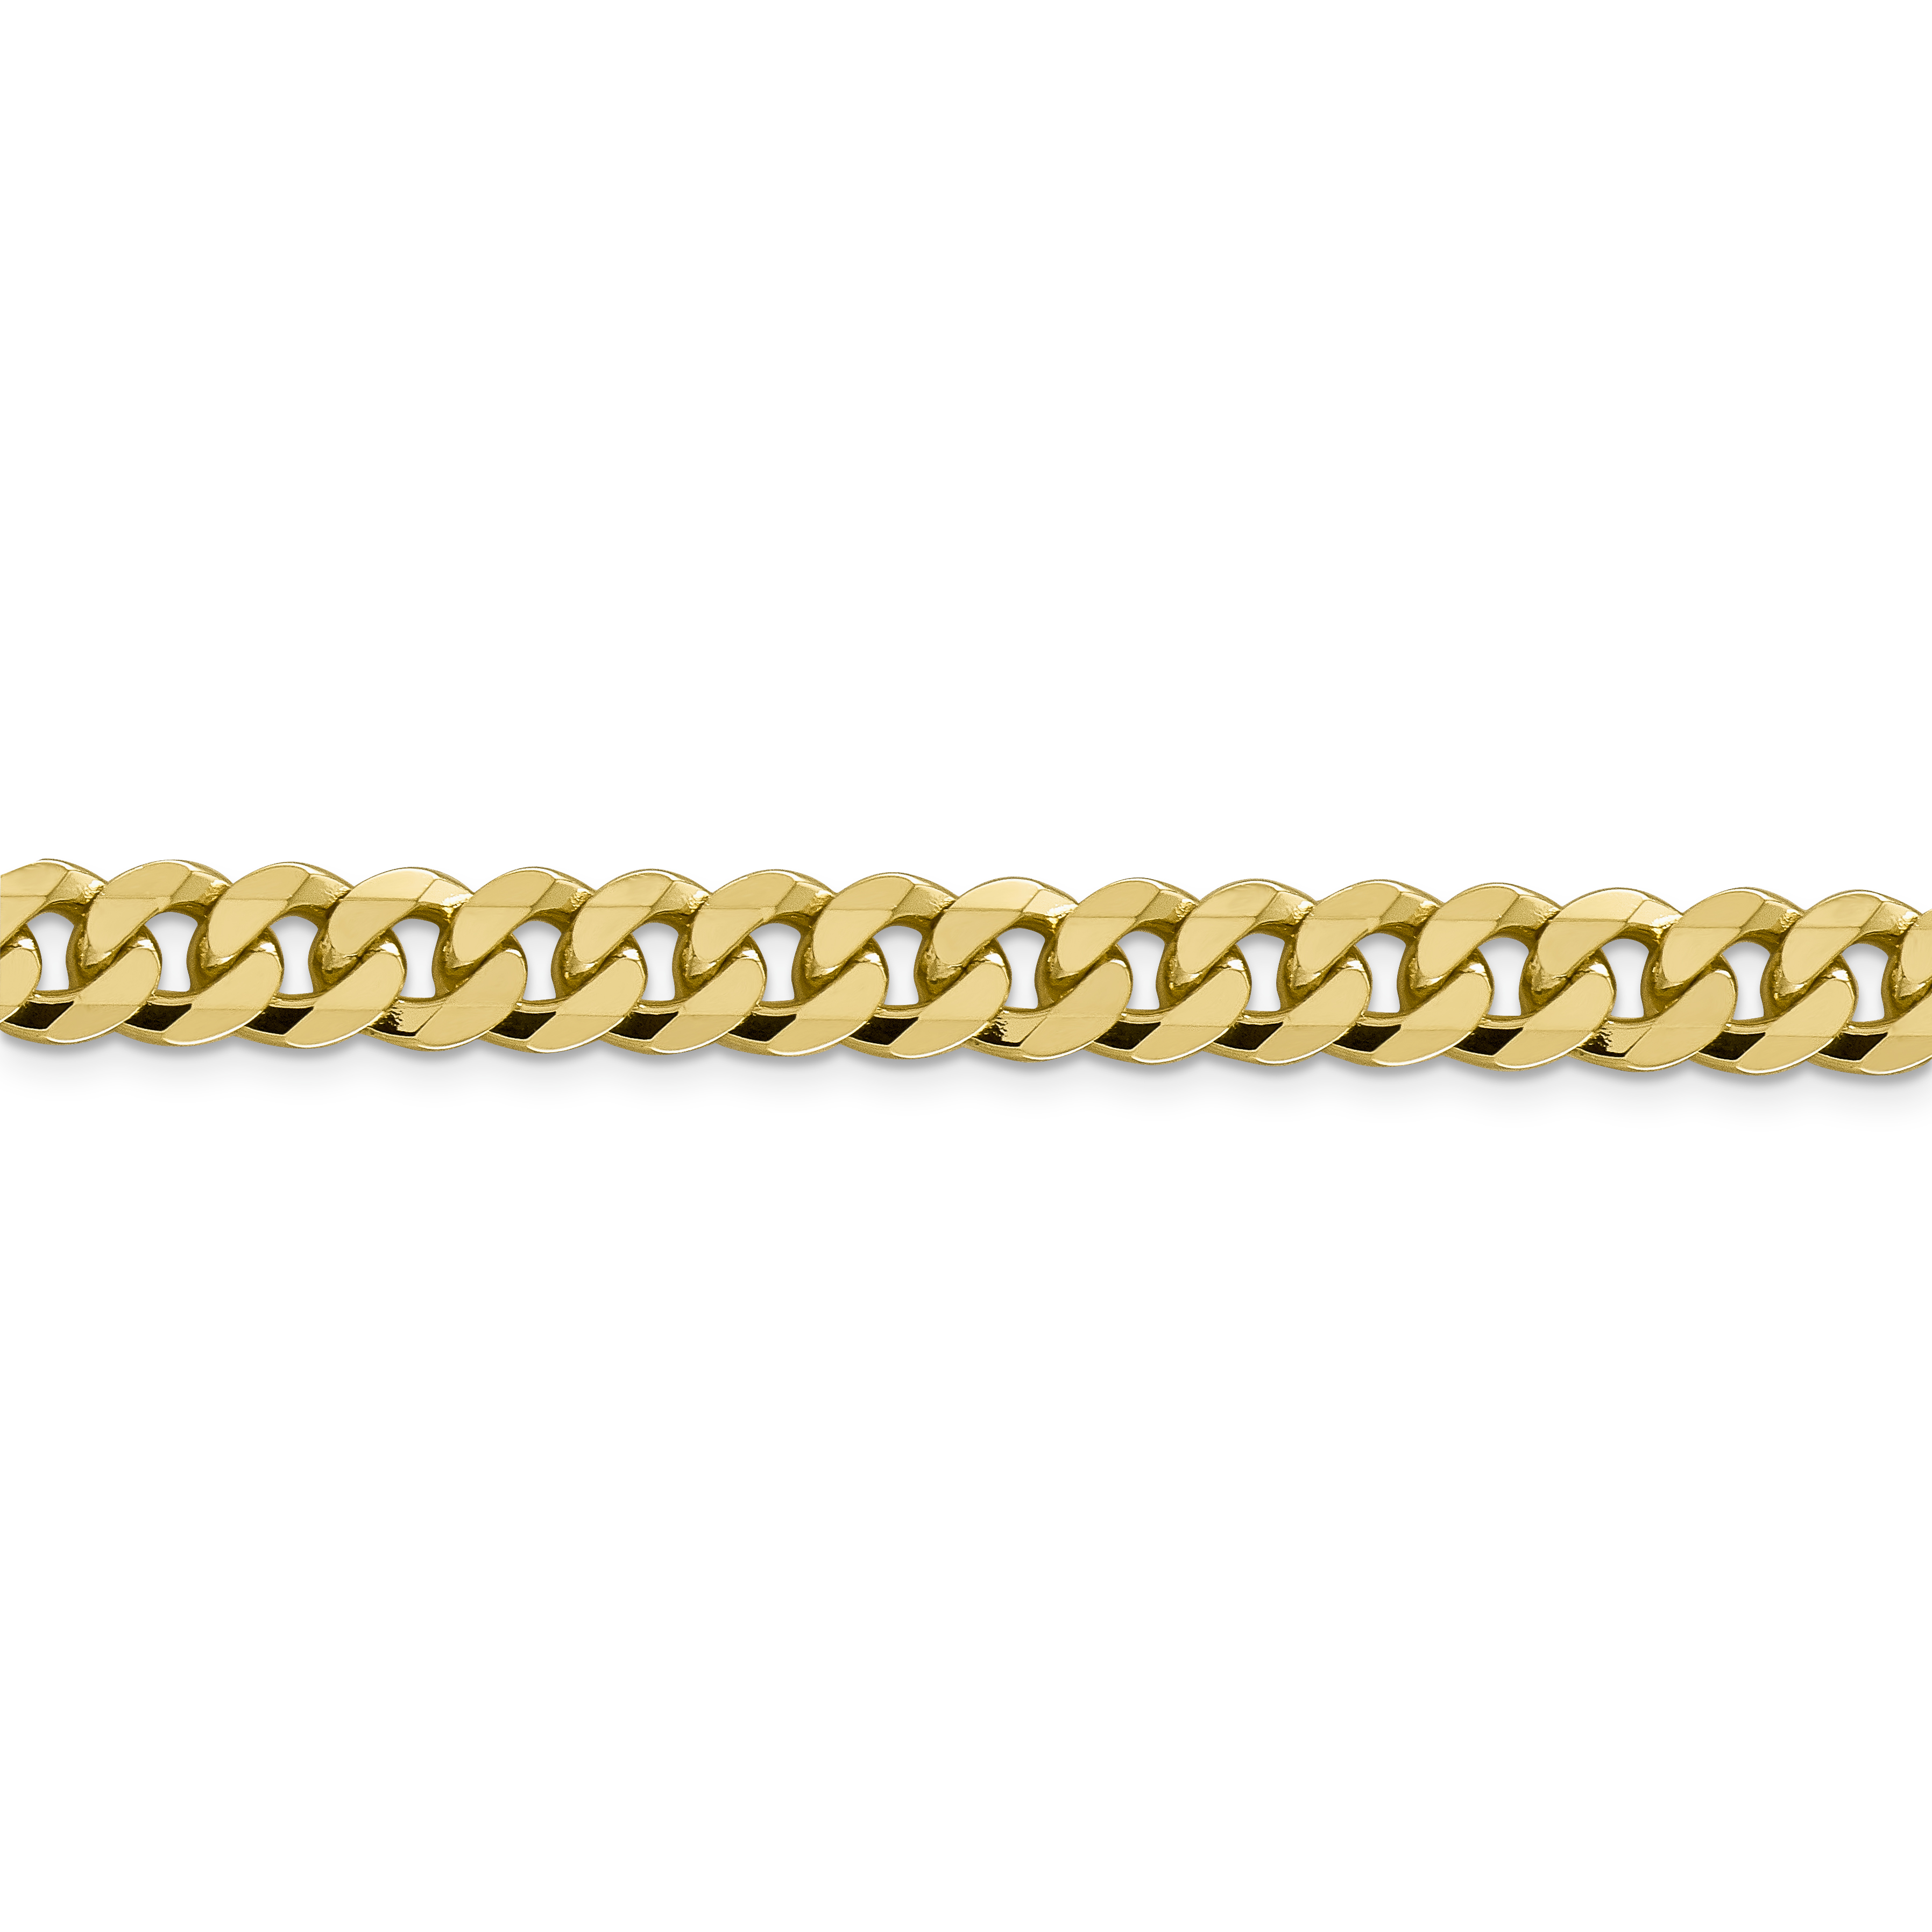 14K Yellow Gold 8.75mm Beveled Curb Chain 20 Inch - image 1 de 5